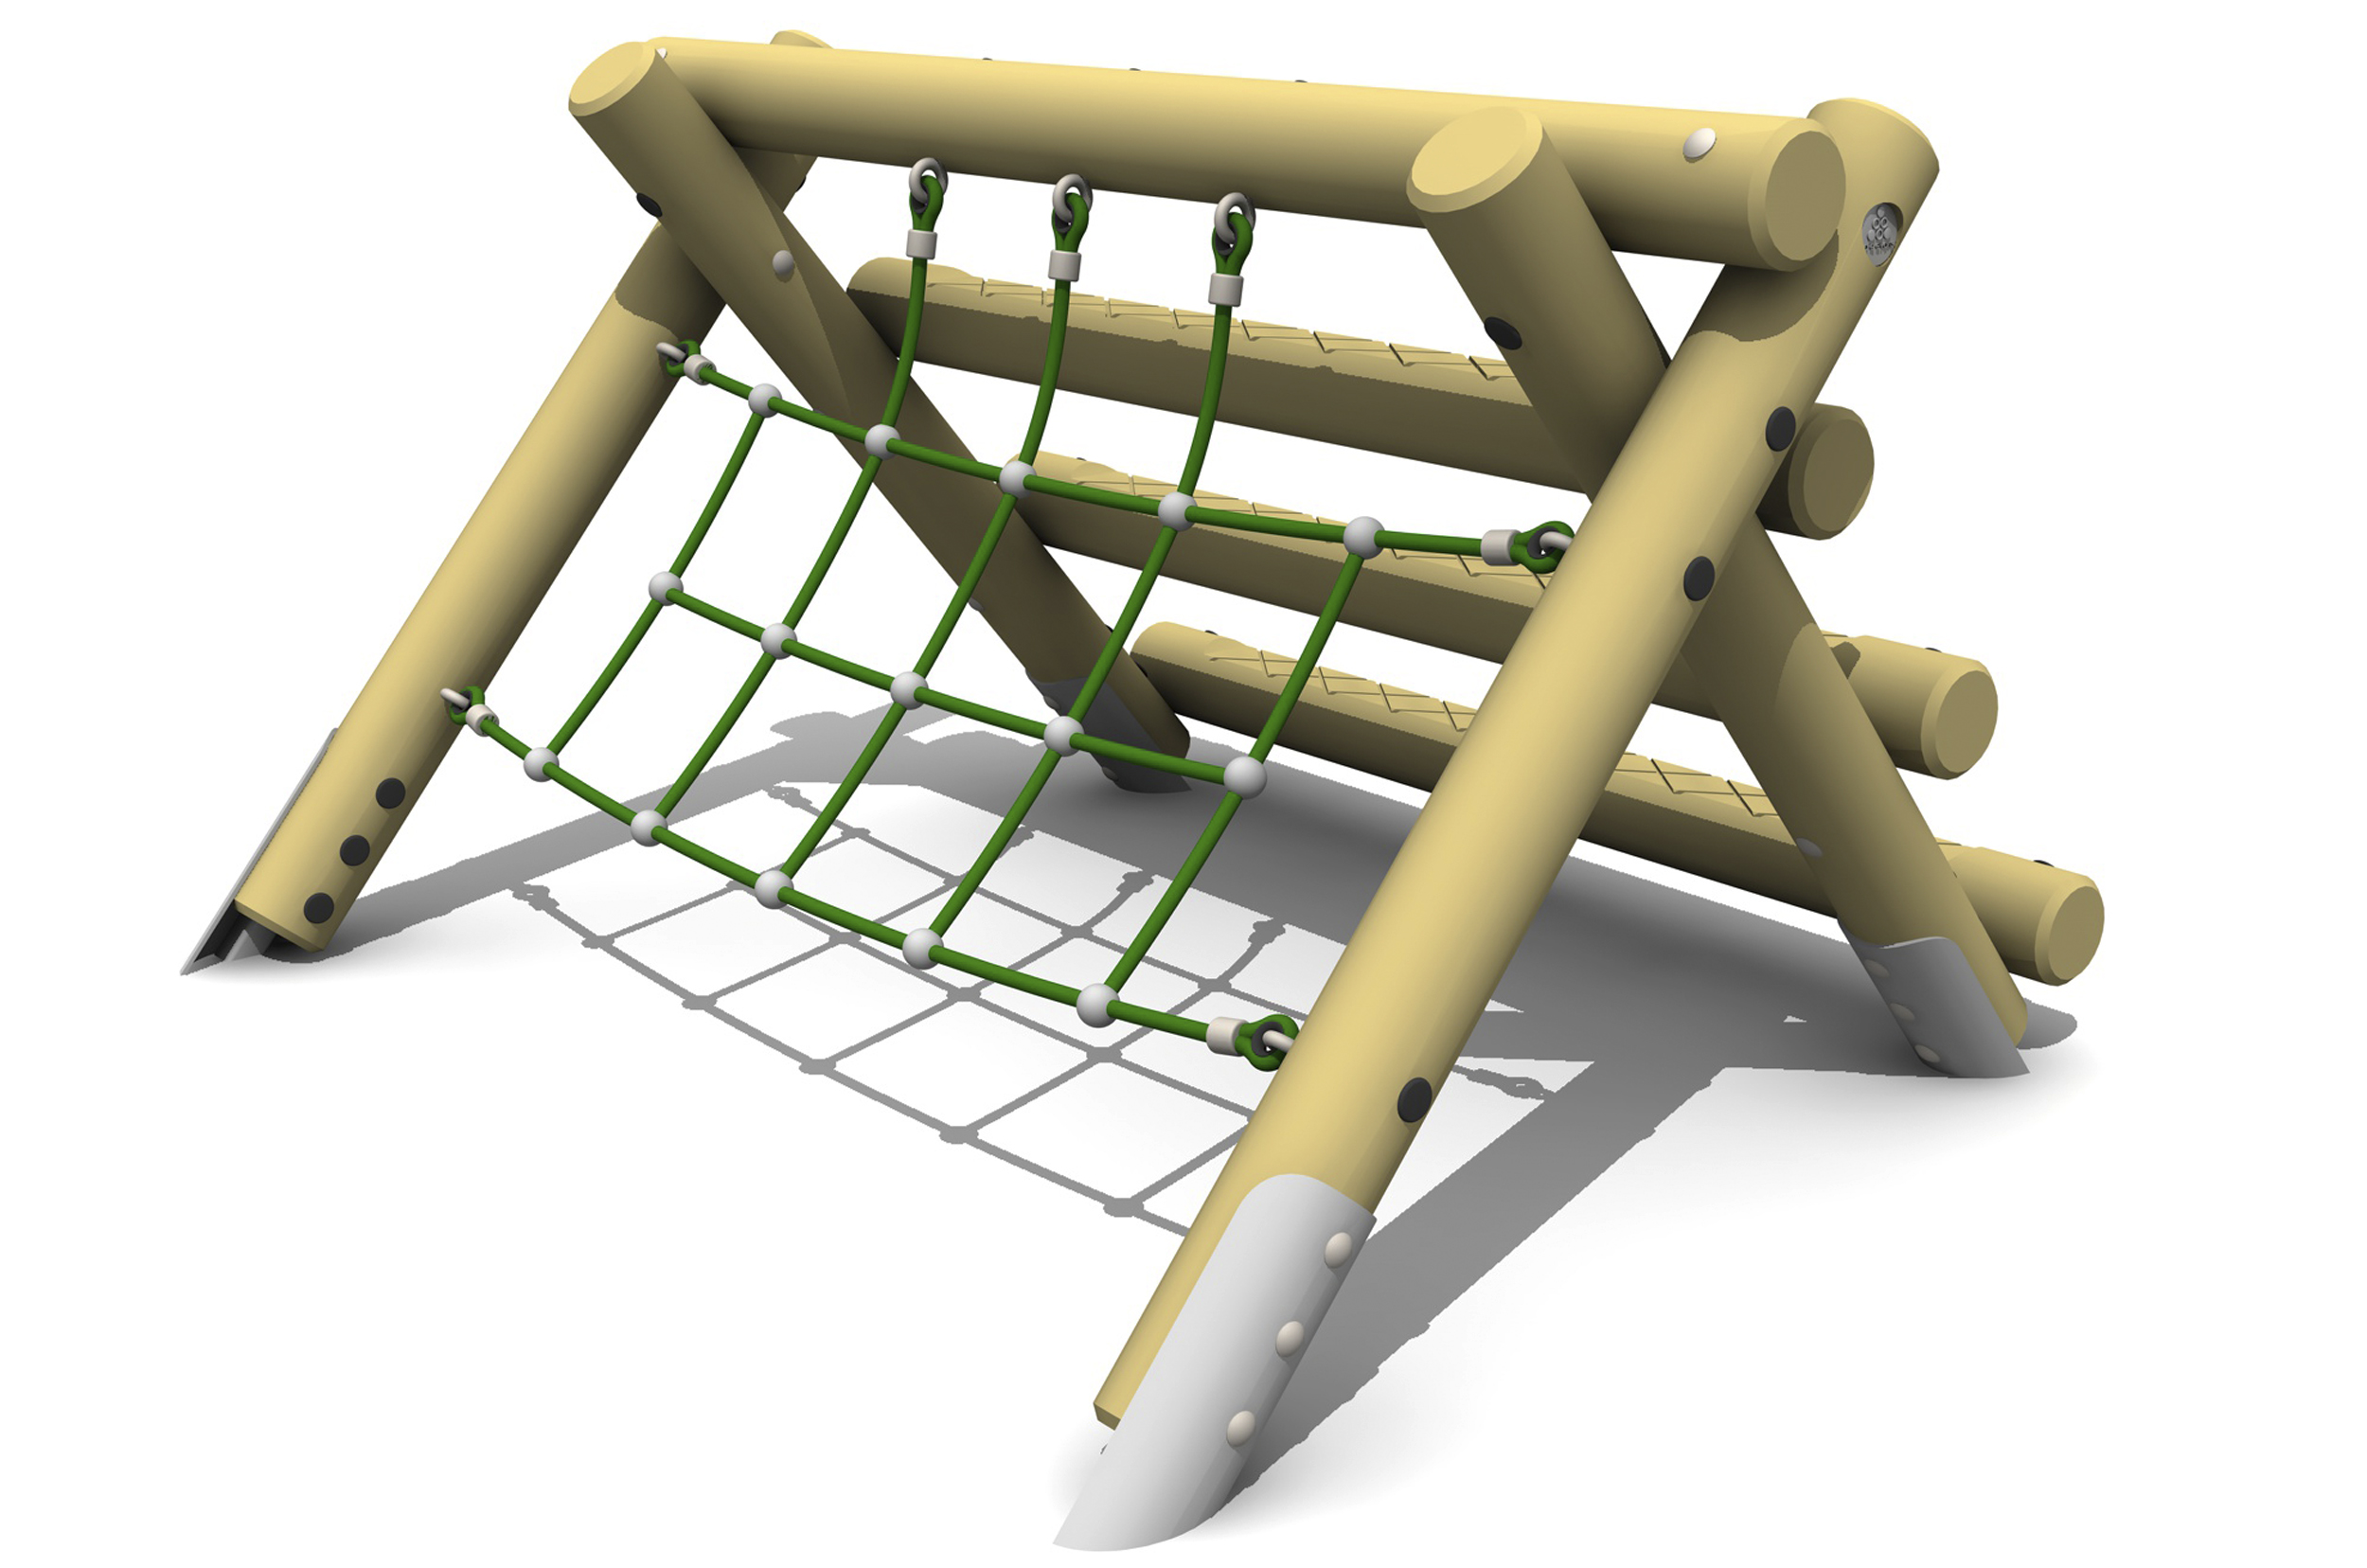 the A Frame Mini is a timber a frame with a green net on the left side and horizontal logs on the right with steel ground fixings